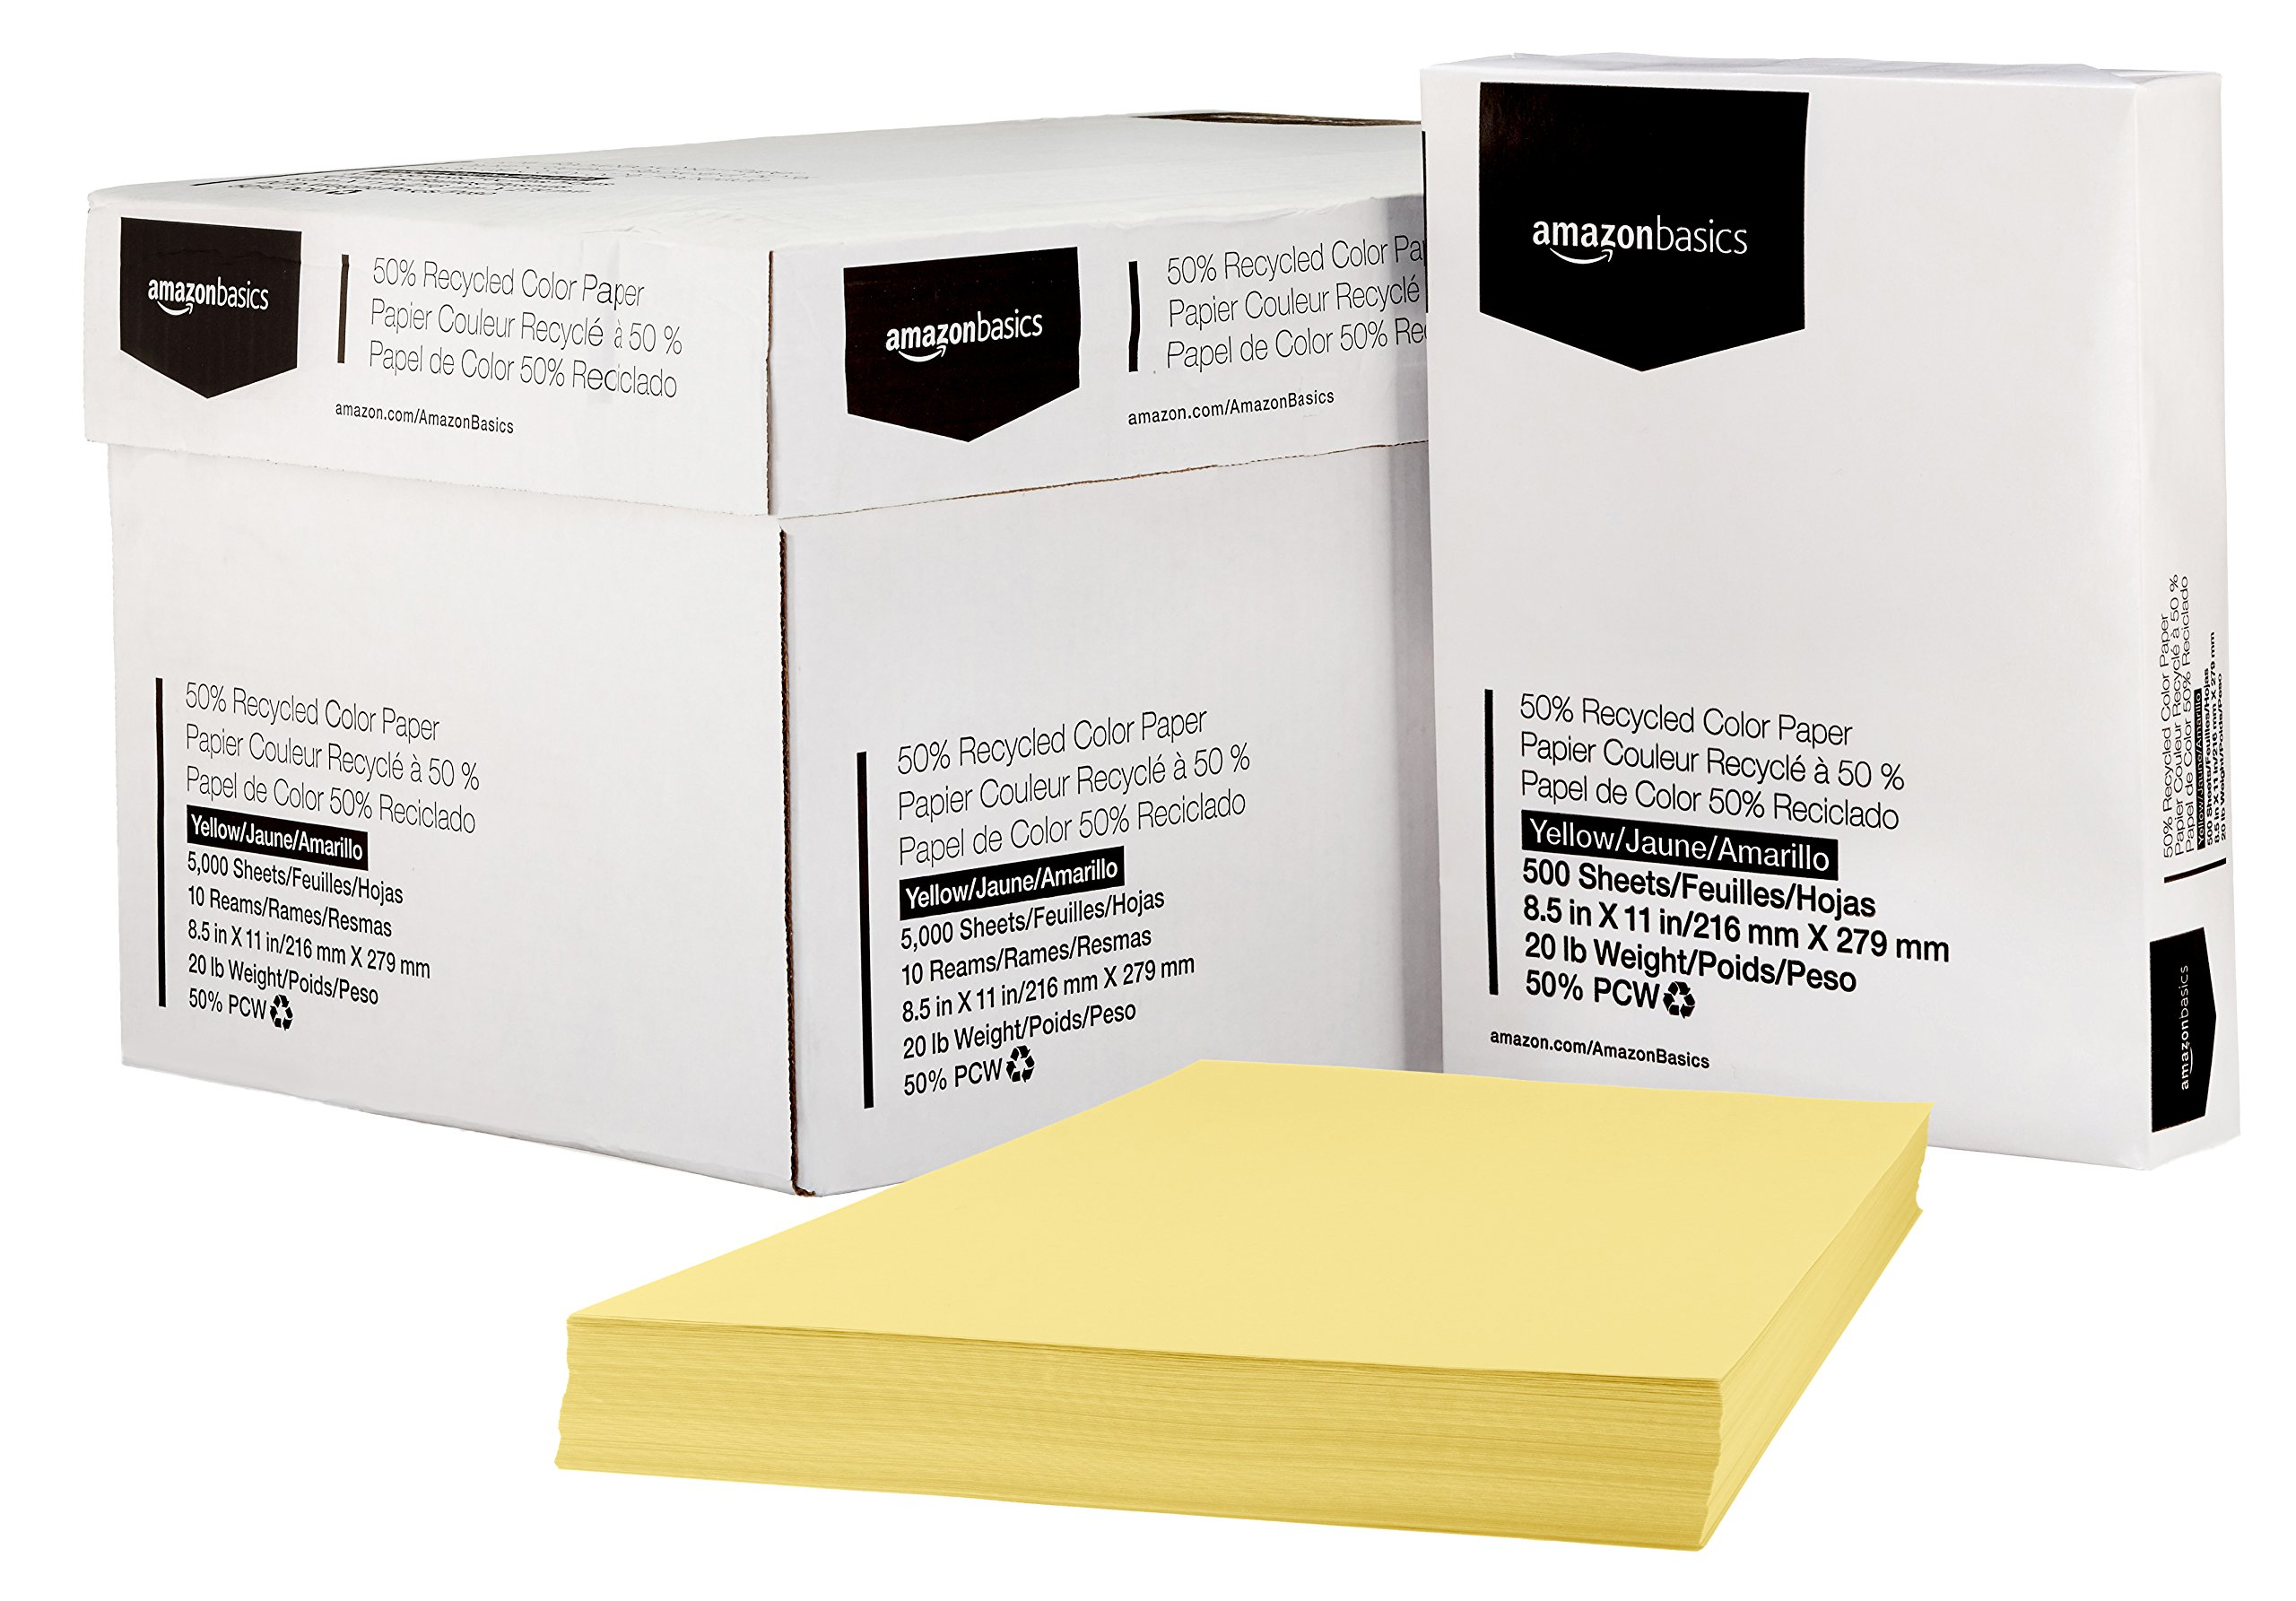 AmazonBasics 50% Recycled Color Printer Paper - Yellow, 8.5 x 11 Inches, 10 Ream Case (5,000 Sheets) by AmazonBasics